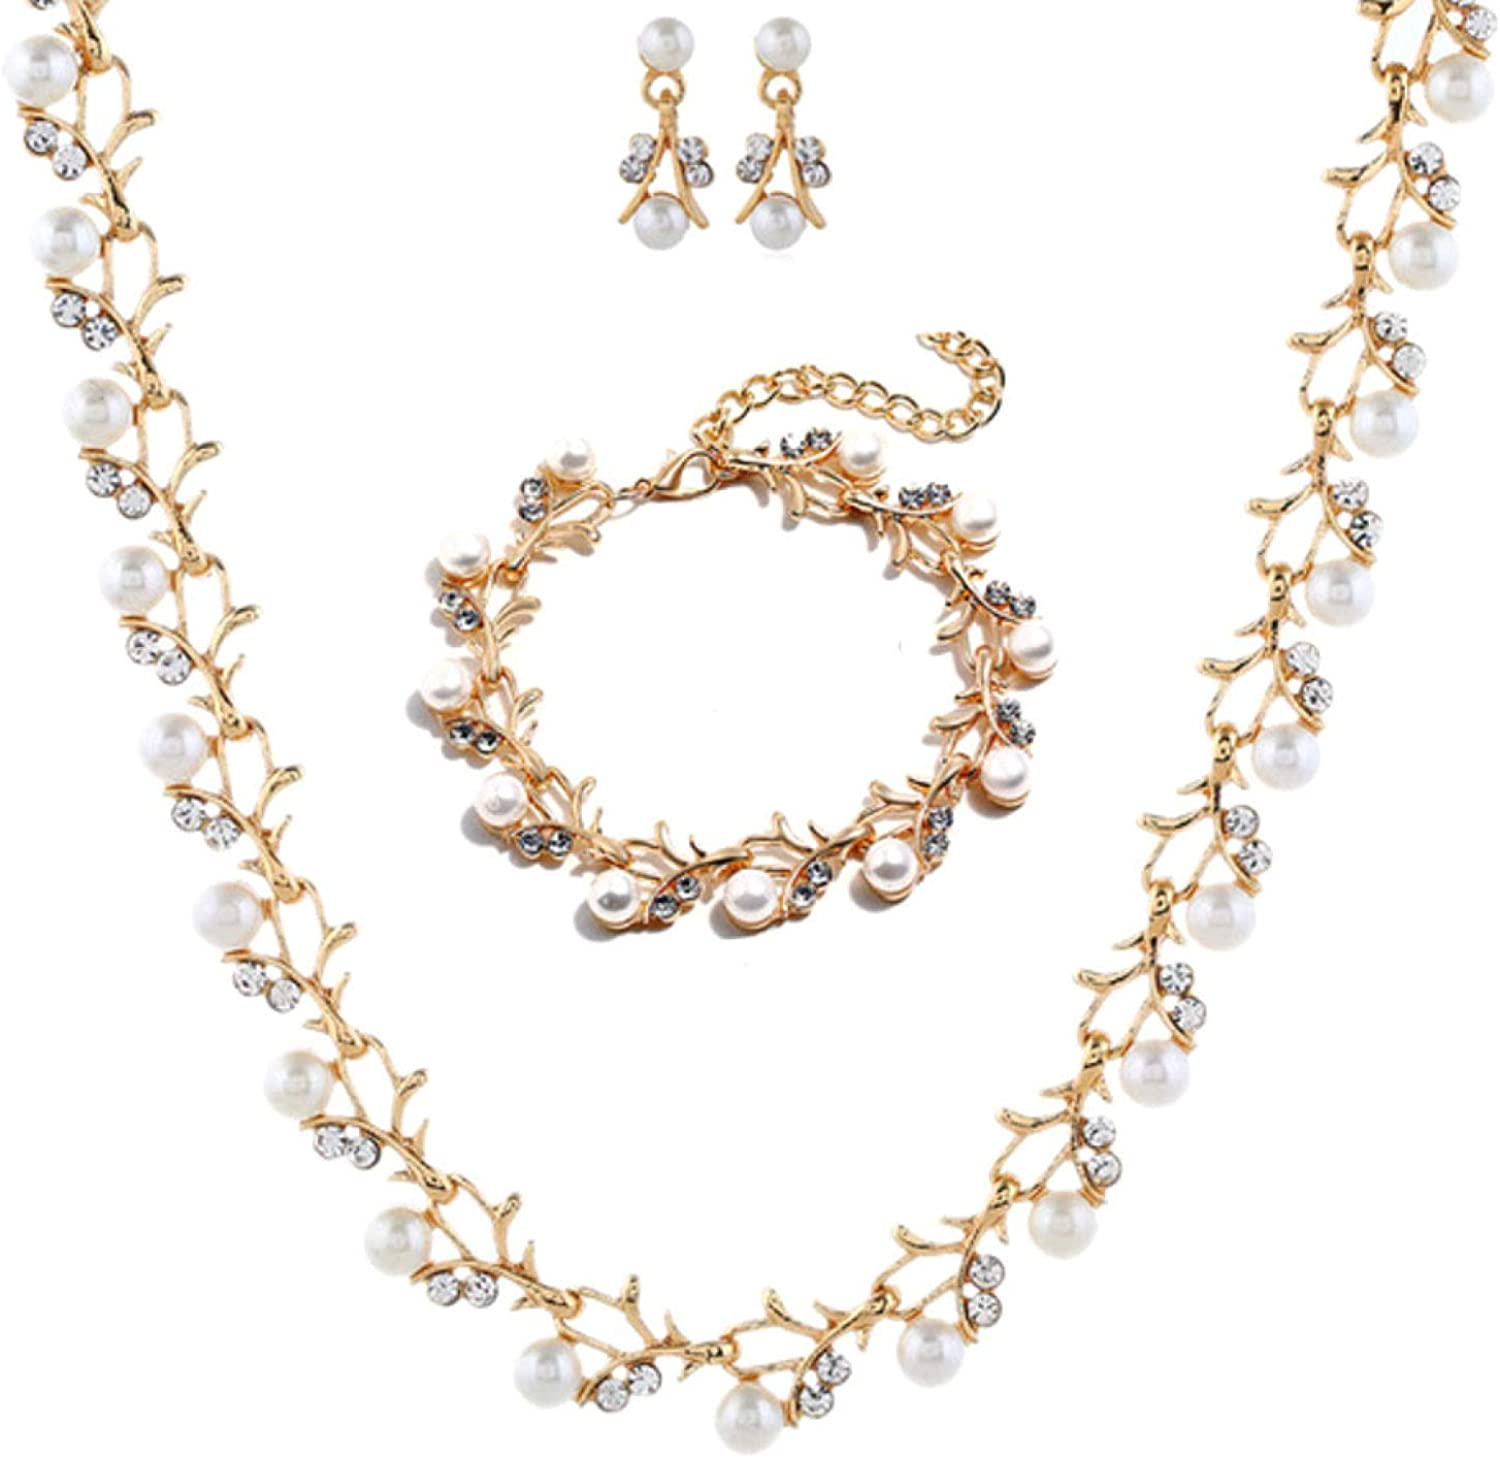 Women's Fashion Luxury goods Jewelry Sets Elegant Faux Our shop OFFers the best service Rhinestone Neck Pearl